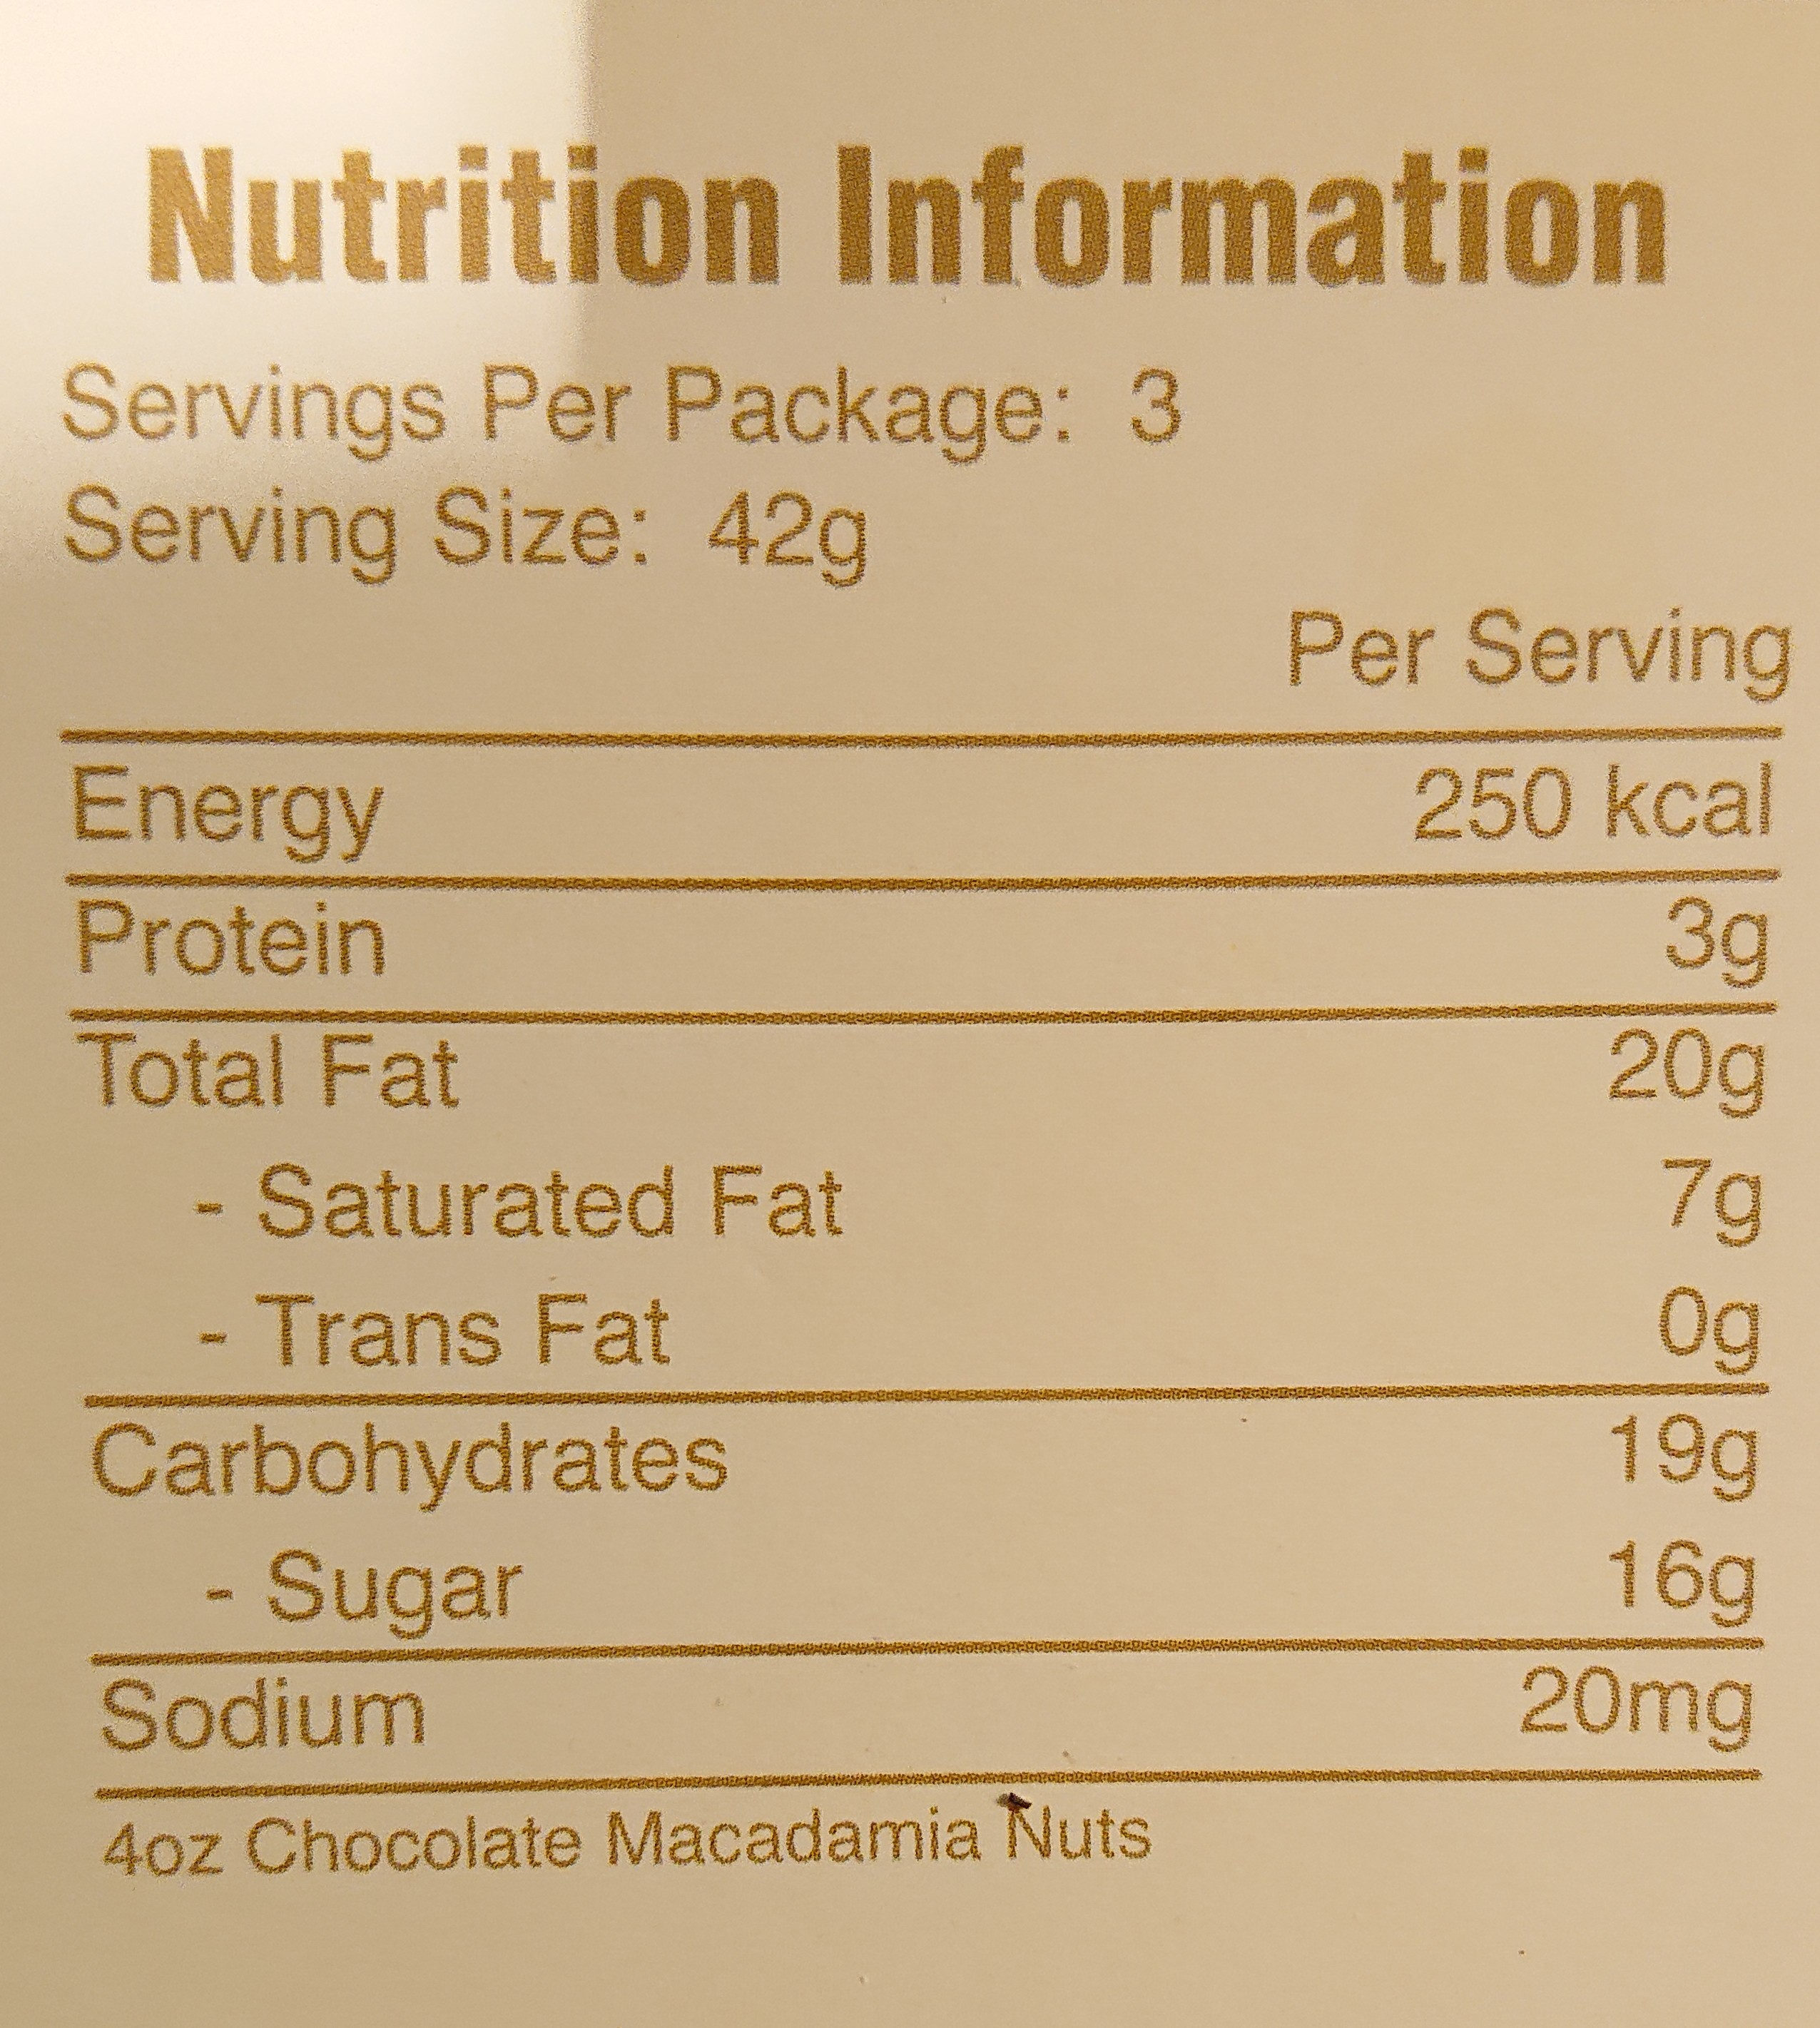 Milk chocolate covered macadamia nuts wholes and halves - Nutrition facts - en